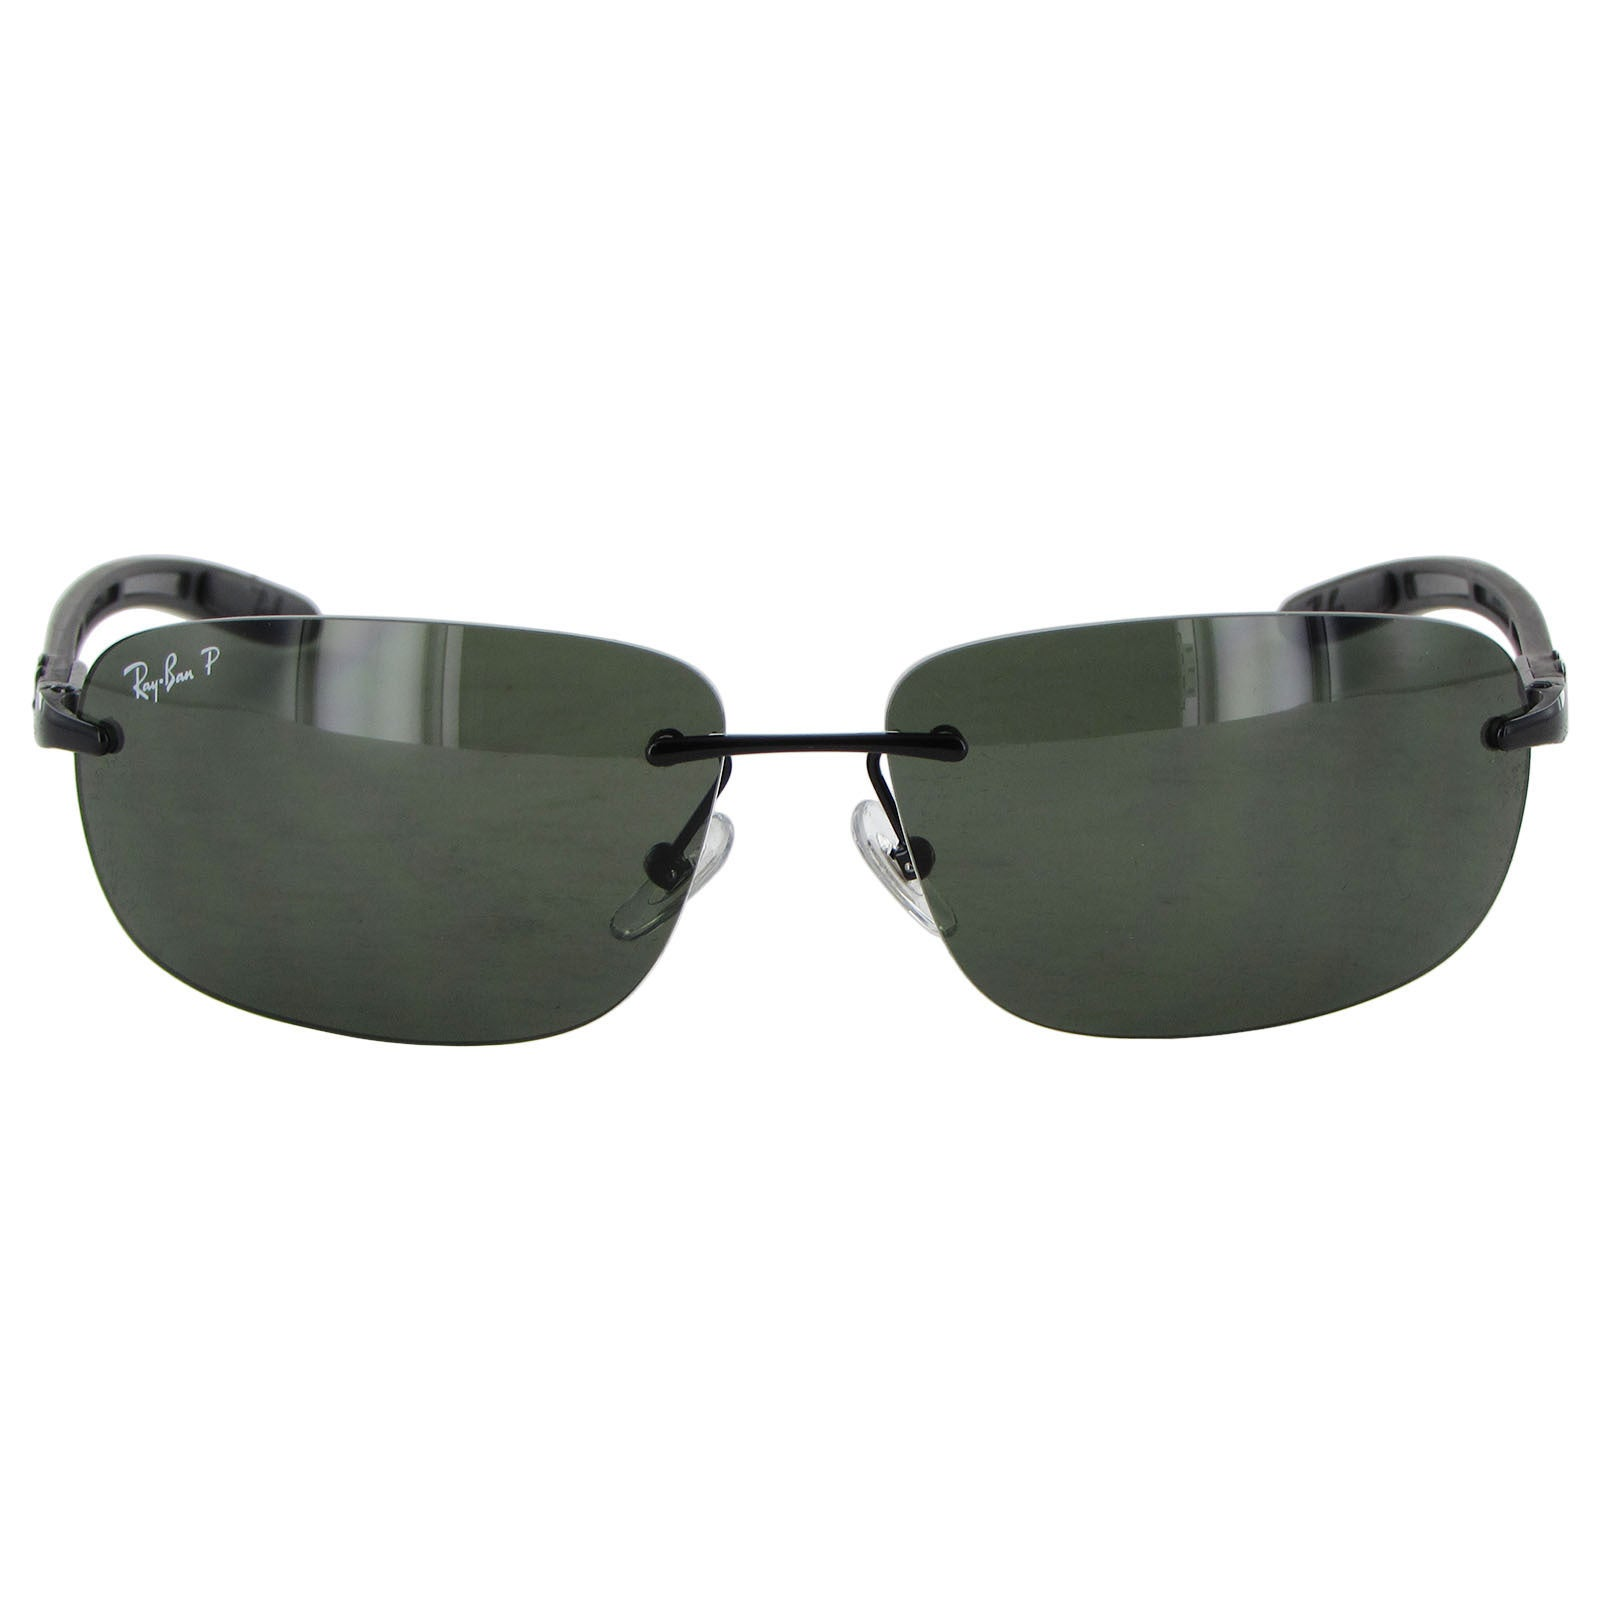 0e99c49132 Shop Ray Ban Tech Carbon Fibre 8303 Mens Black Frame Green Polarized Lens  Sunglasses - Free Shipping Today - Overstock - 15079251